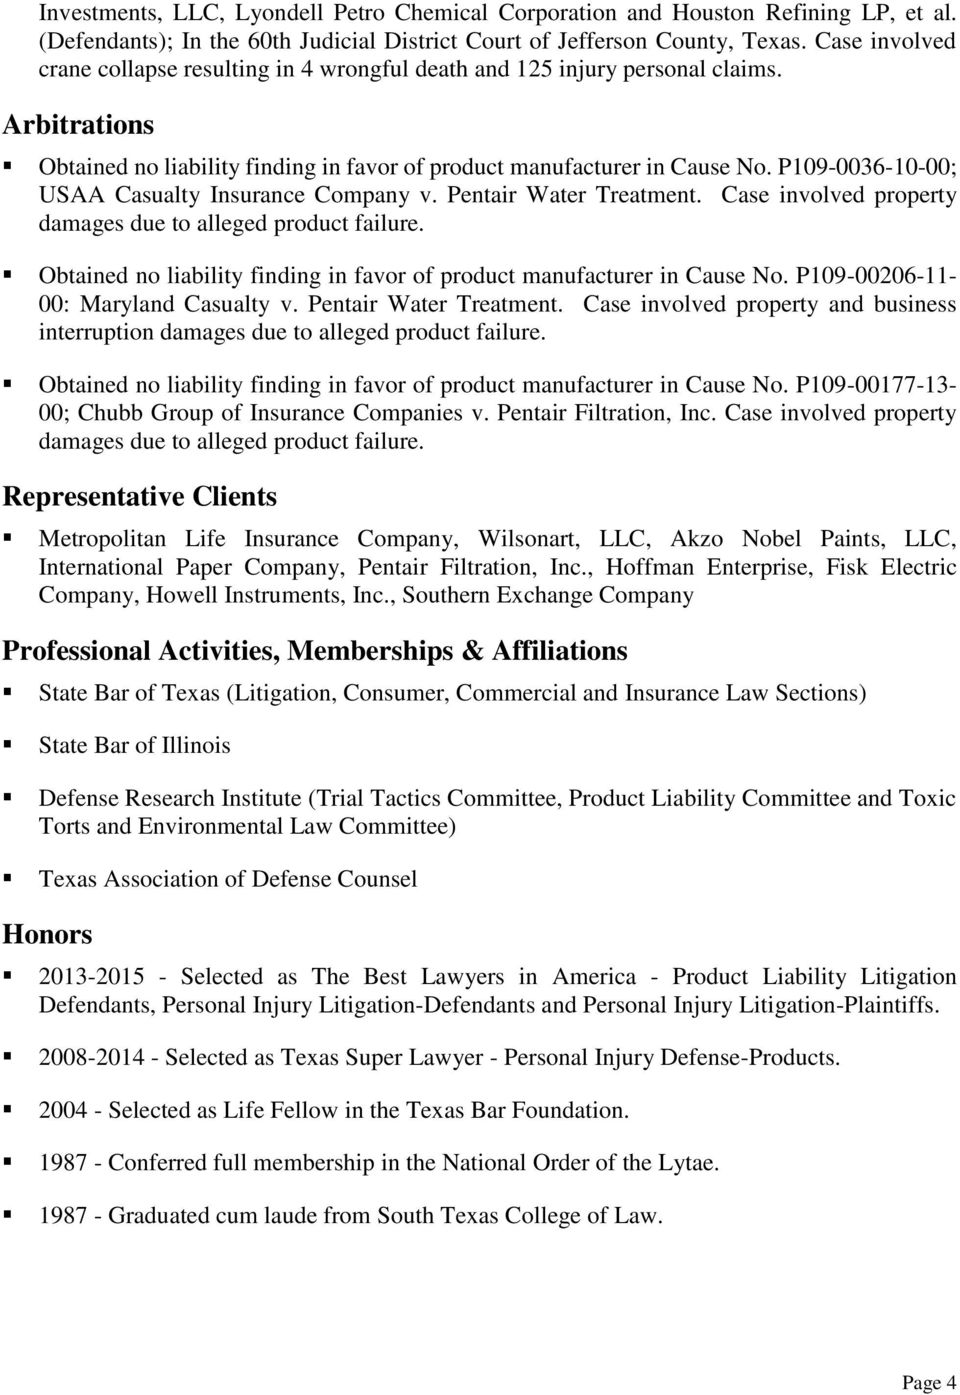 P109-0036-10-00; USAA Casualty Insurance Company v. Pentair Water Treatment. Case involved property damages due to alleged product failure.